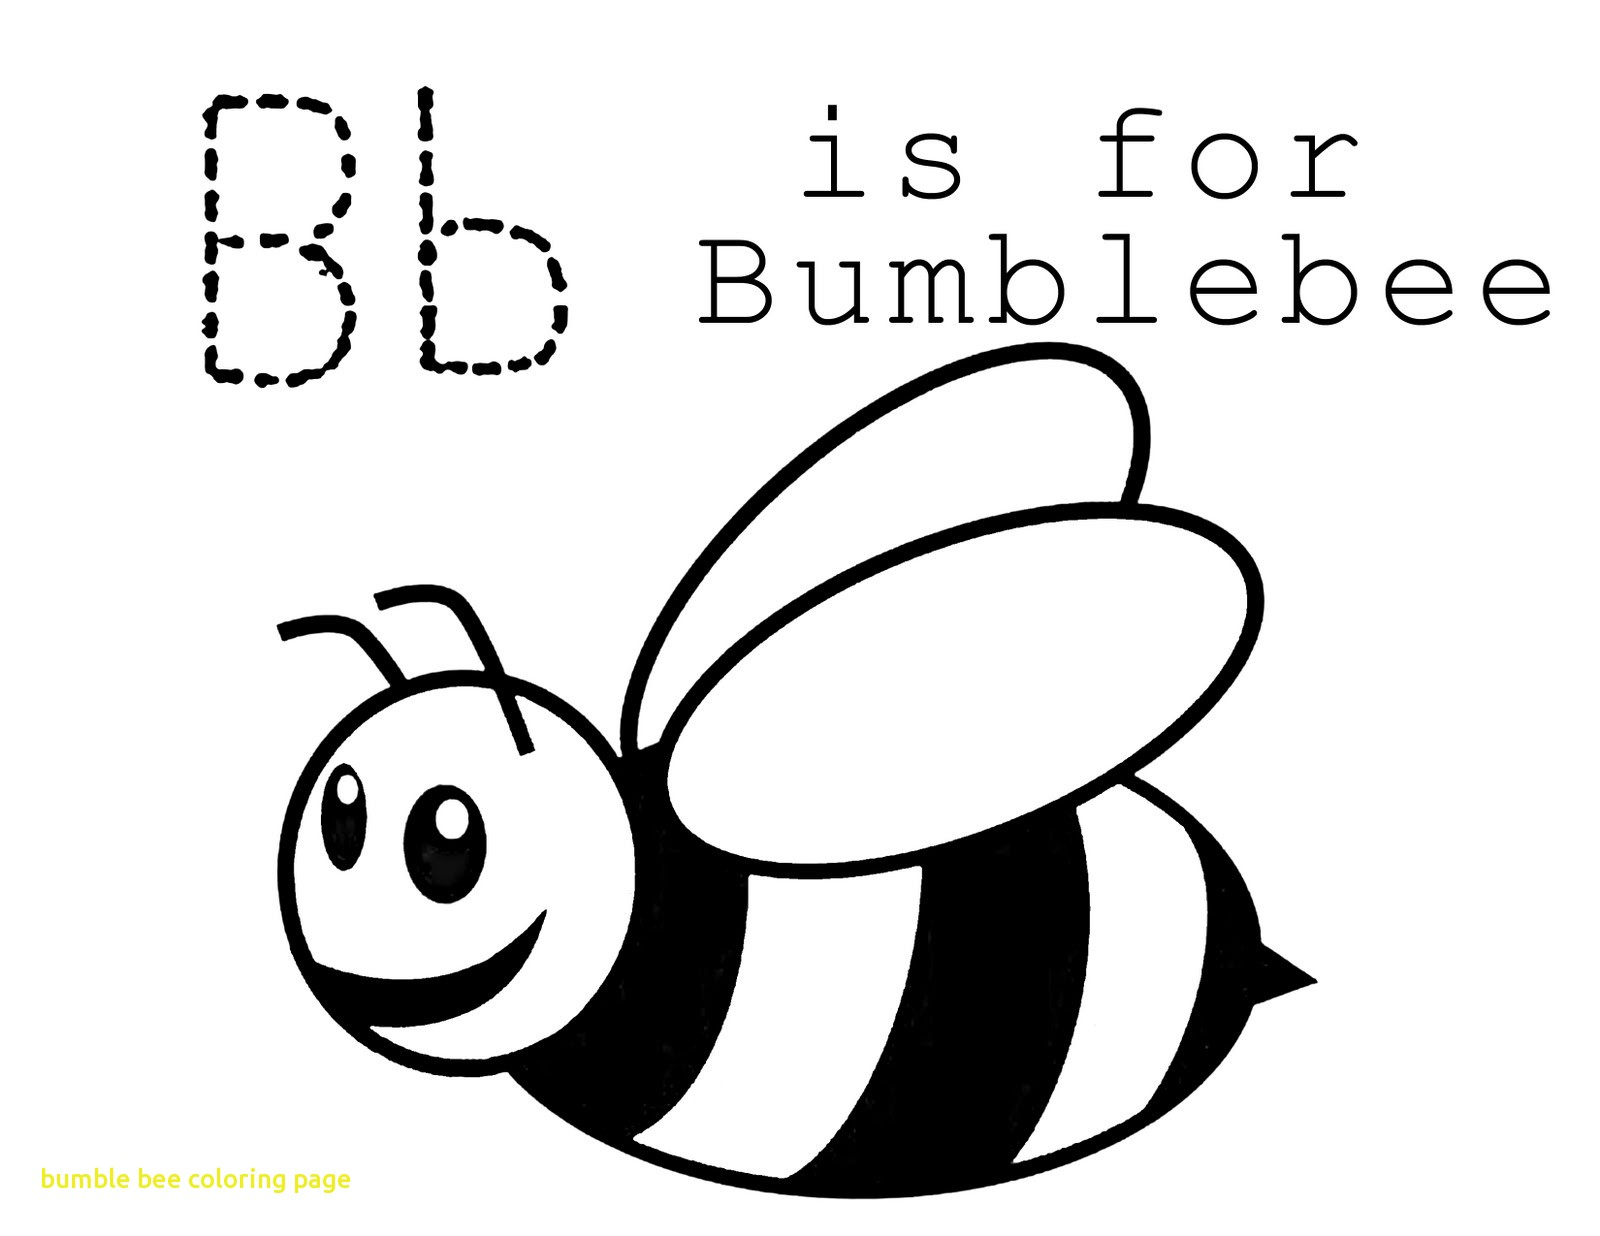 1600x1236 Bumble Bee Coloring Page With Printable Bumble Bee Coloring Sheet